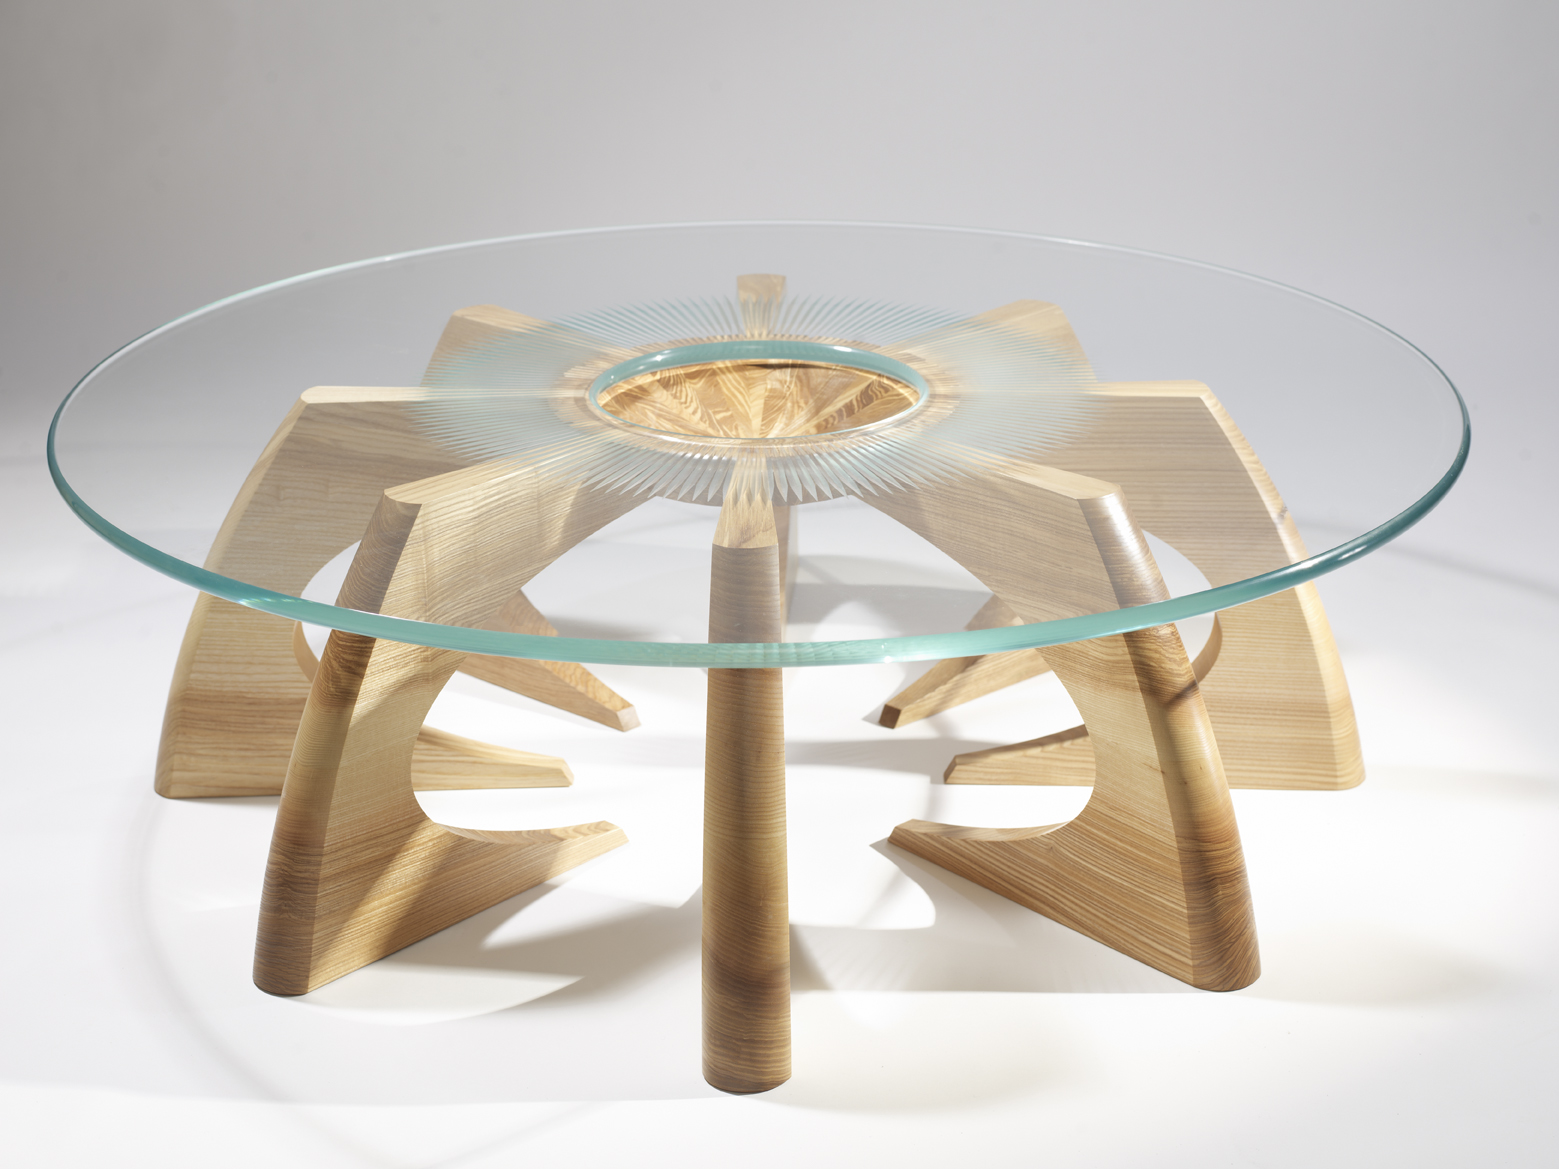 Interior house design a minimalist table but can produce for Wooden furniture design